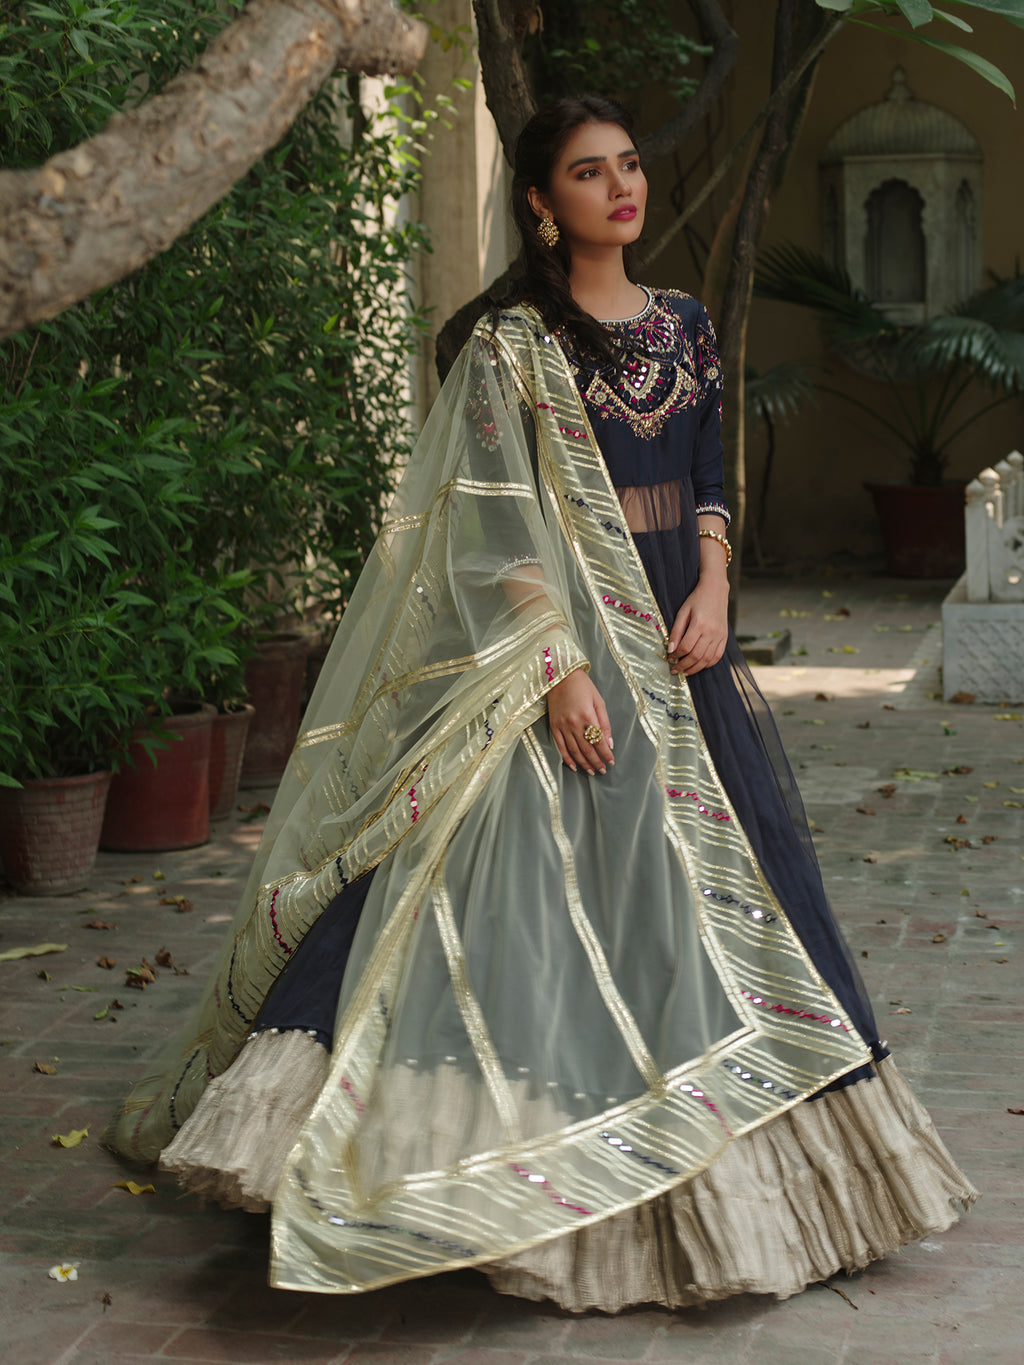 SUFI W/ CRUSHED LEHENGA AND DUPATTA